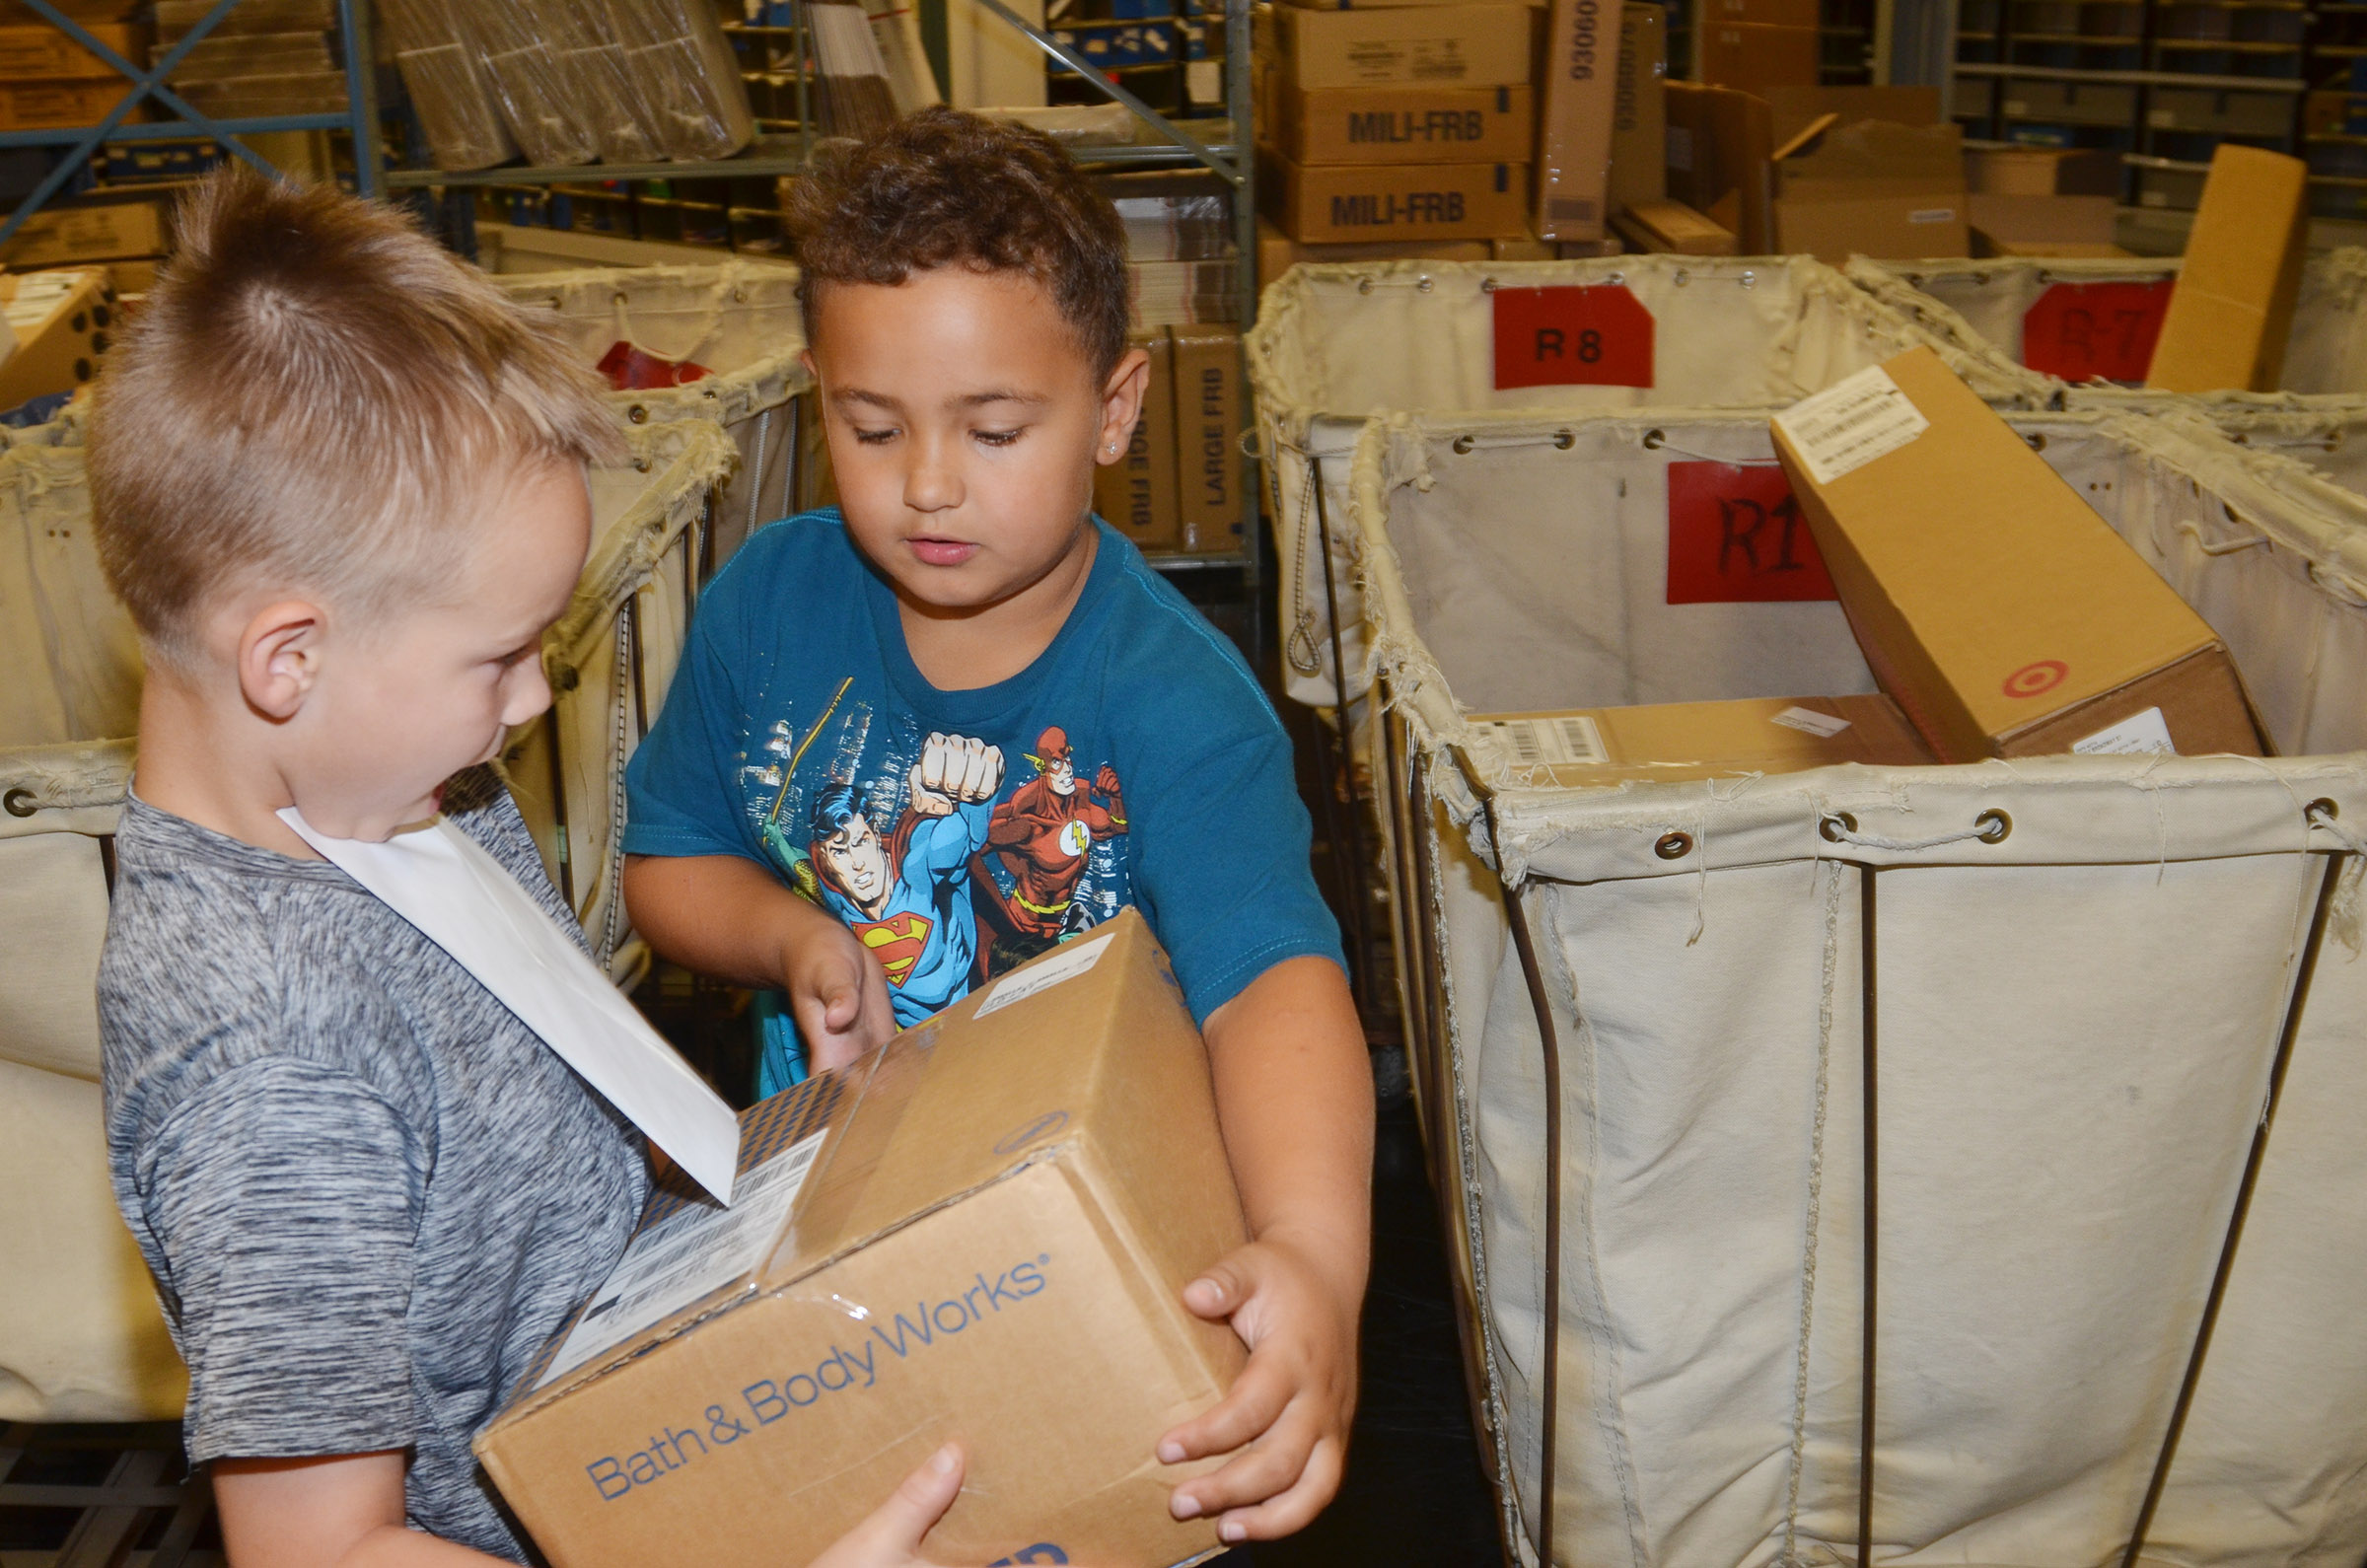 CES second-graders Jackson Bates, at left, and Marion Mann place a package into a bin corresponding with its route.